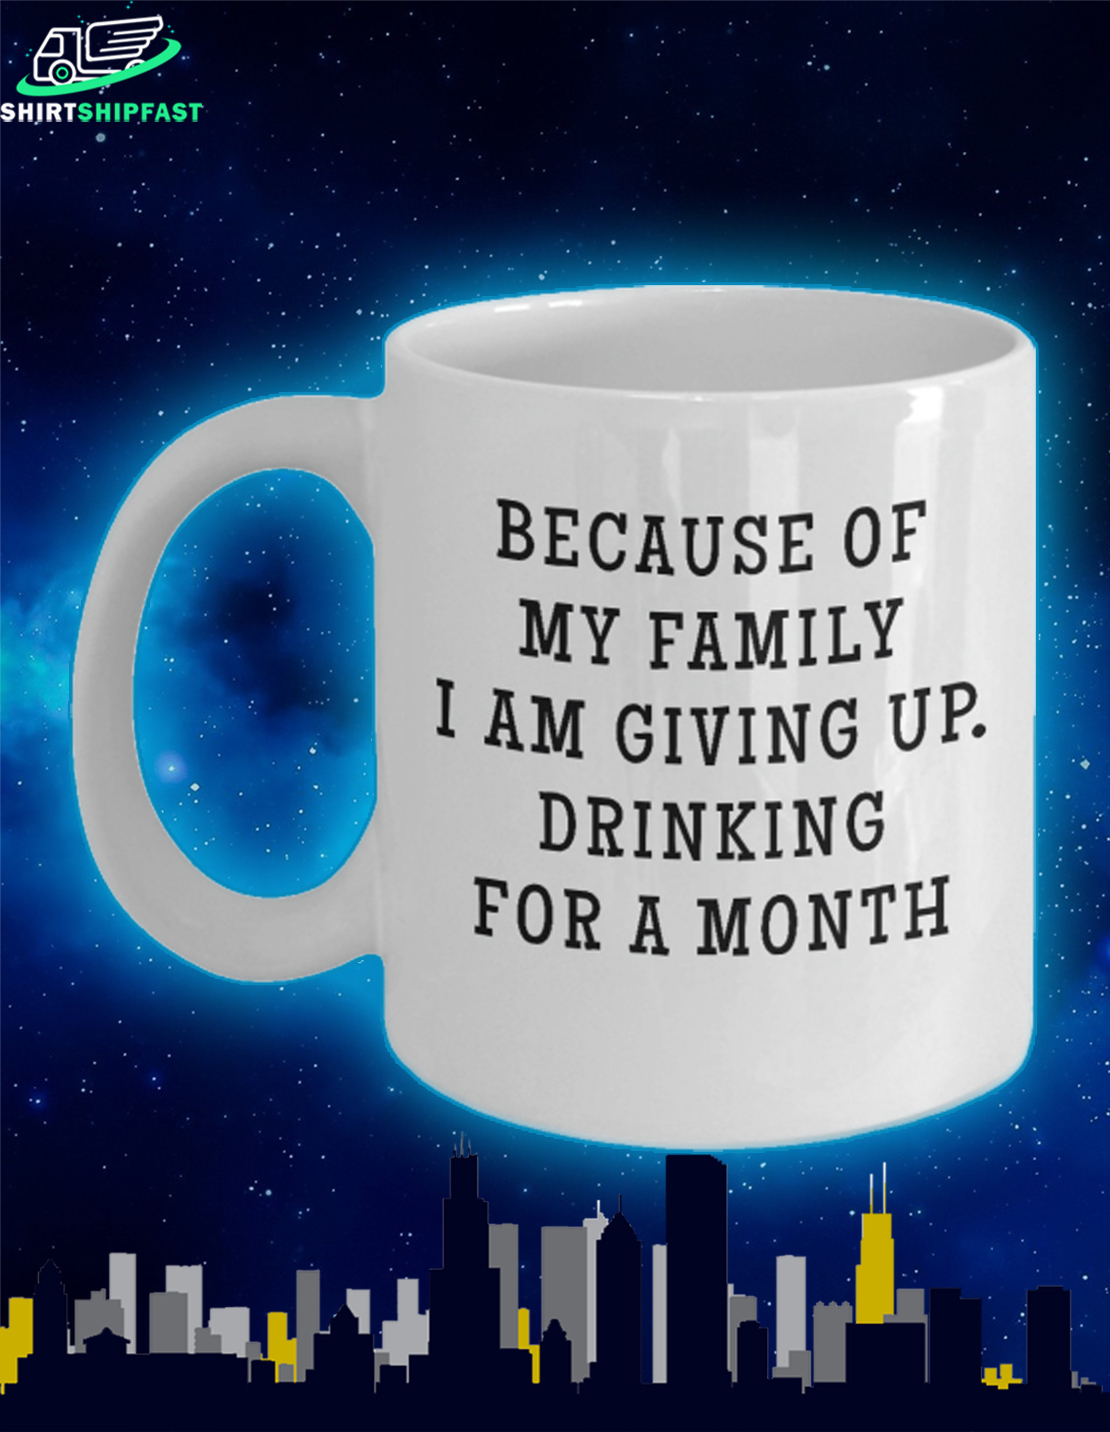 Because of my family I am giving up drinking for a month mug - Picture 1